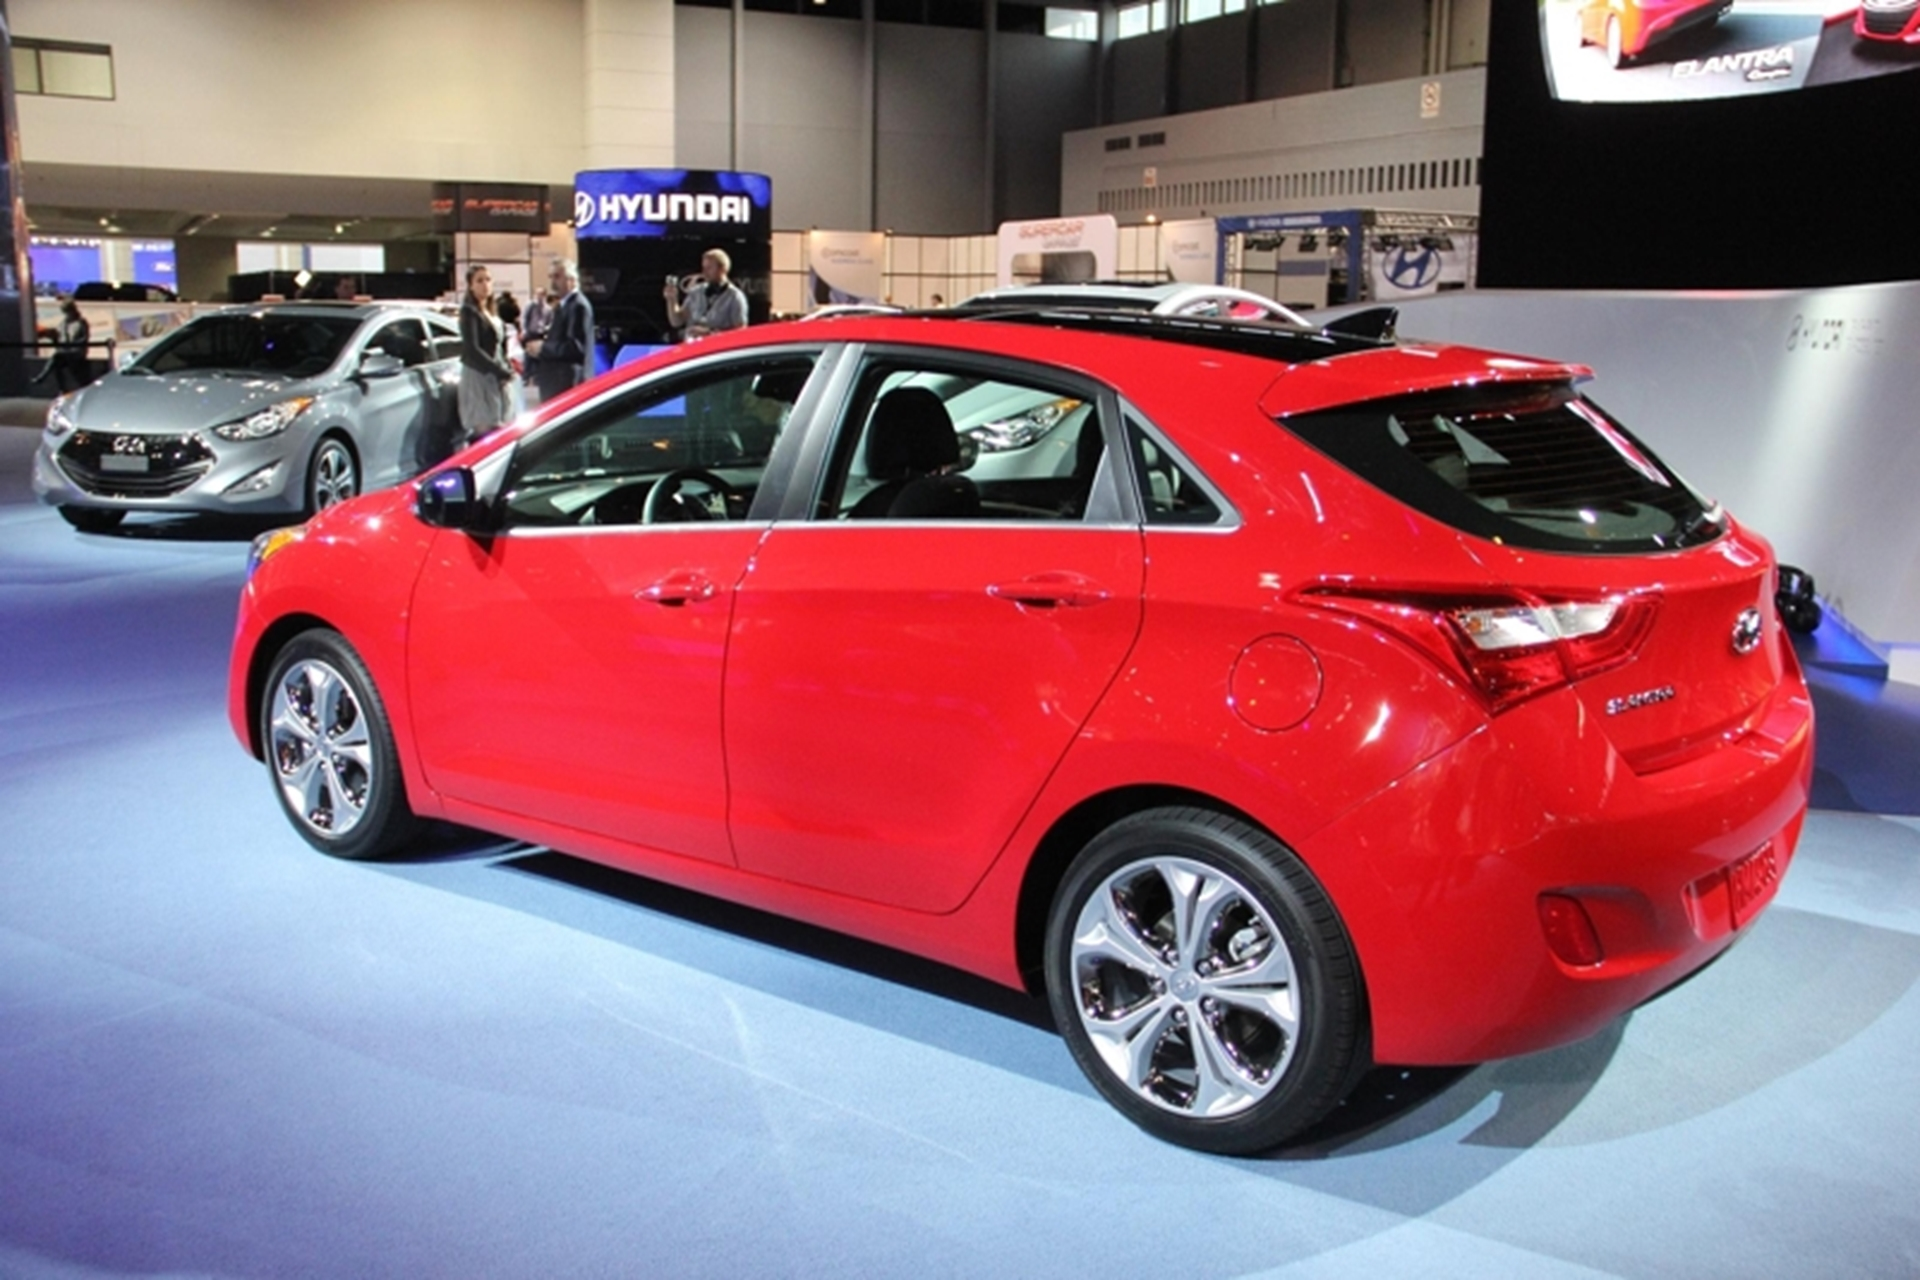 Chicago Auto Show Hyundai Elantra Coupe And Gt Two Door Car This Model Of The Sedan Available Spring Will Attract Even More Buyers To Range Further Expanding Its Appeal